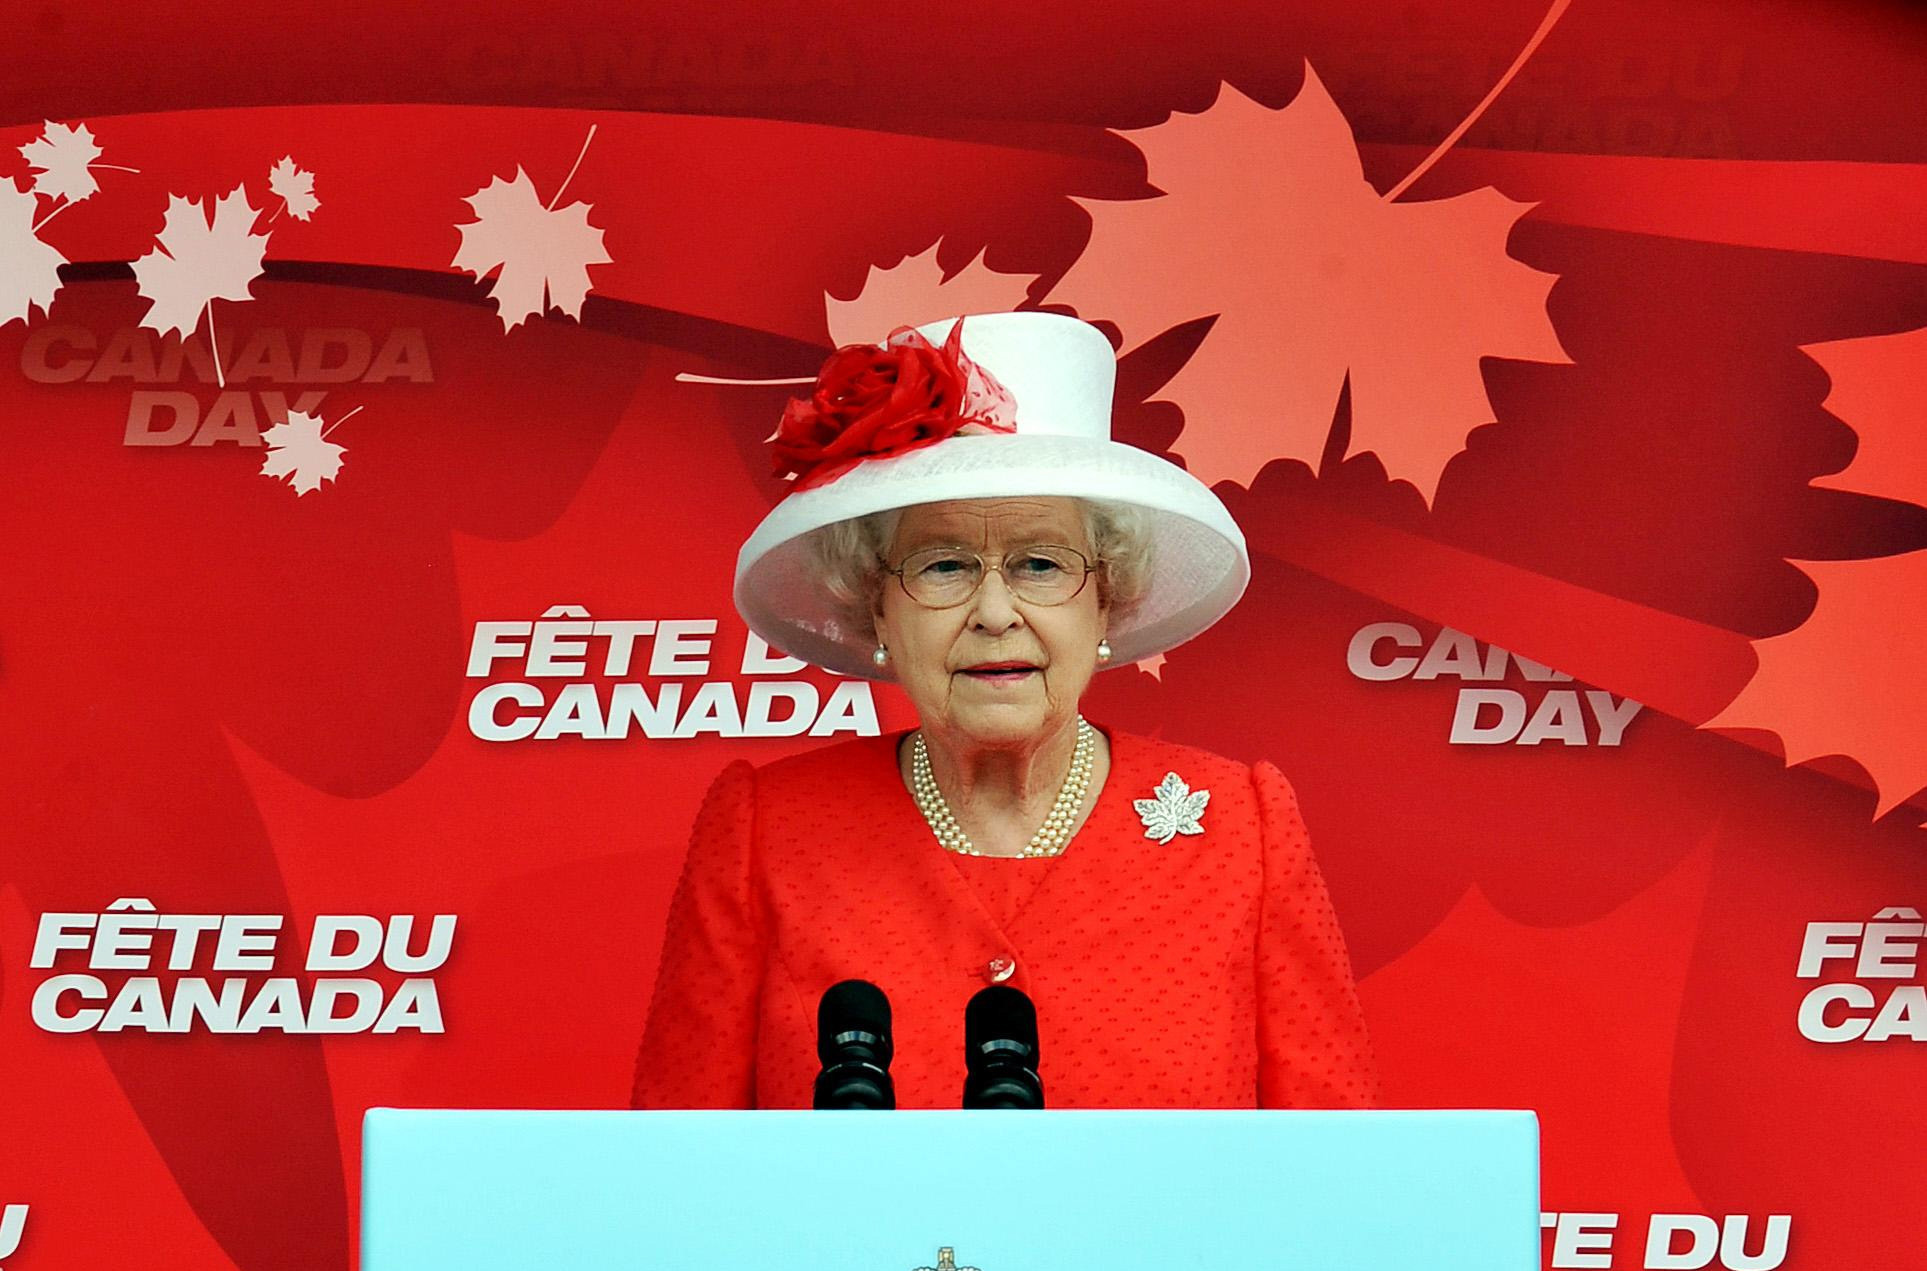 The Queen in Canada